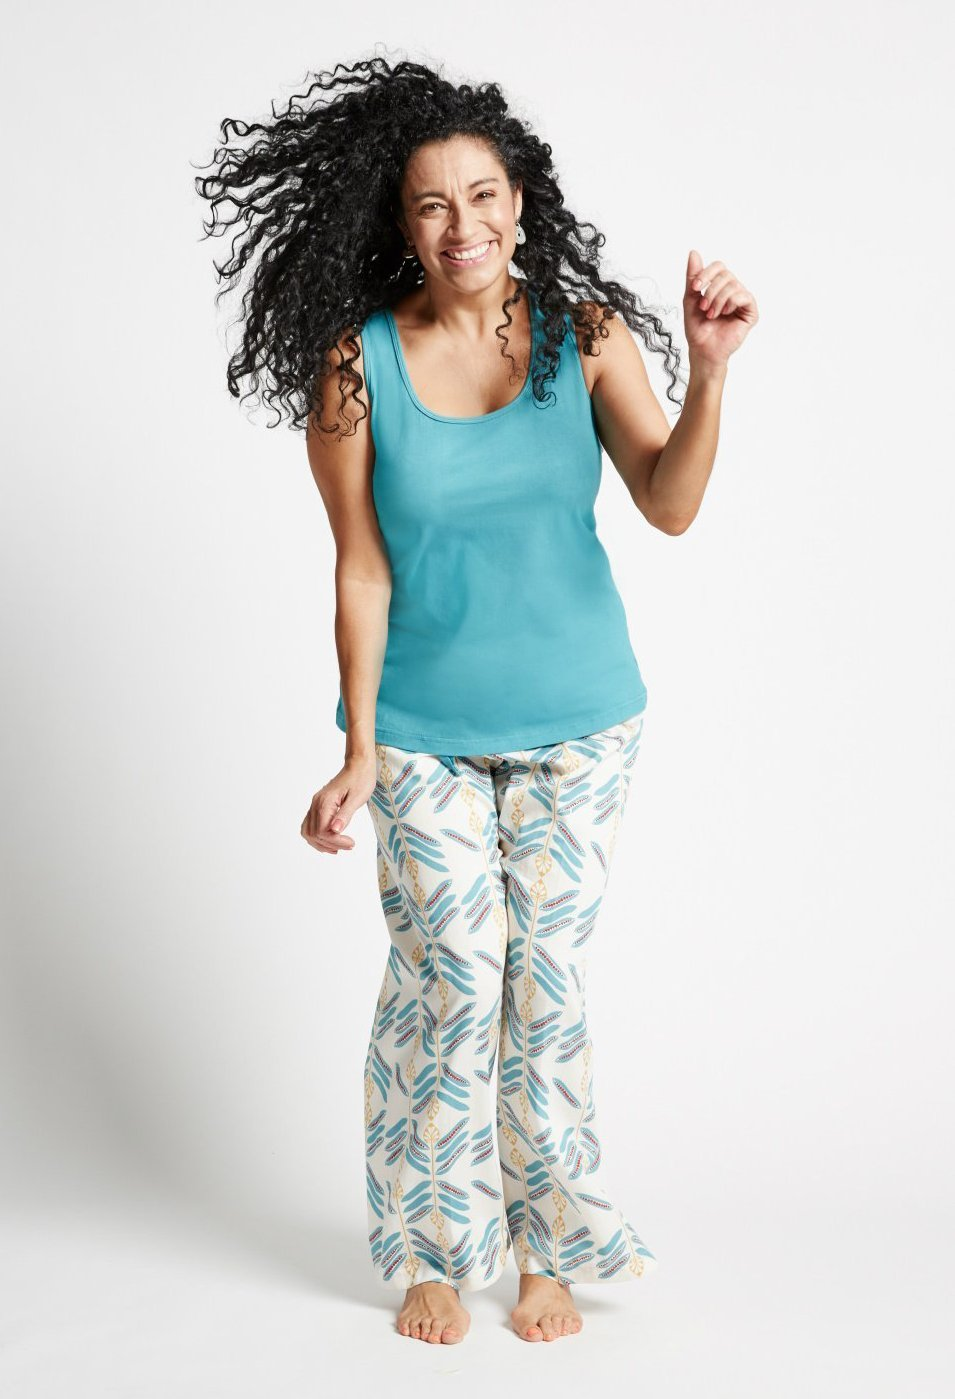 Peas in the Pod - Racer Top and Pants Loungewear Set